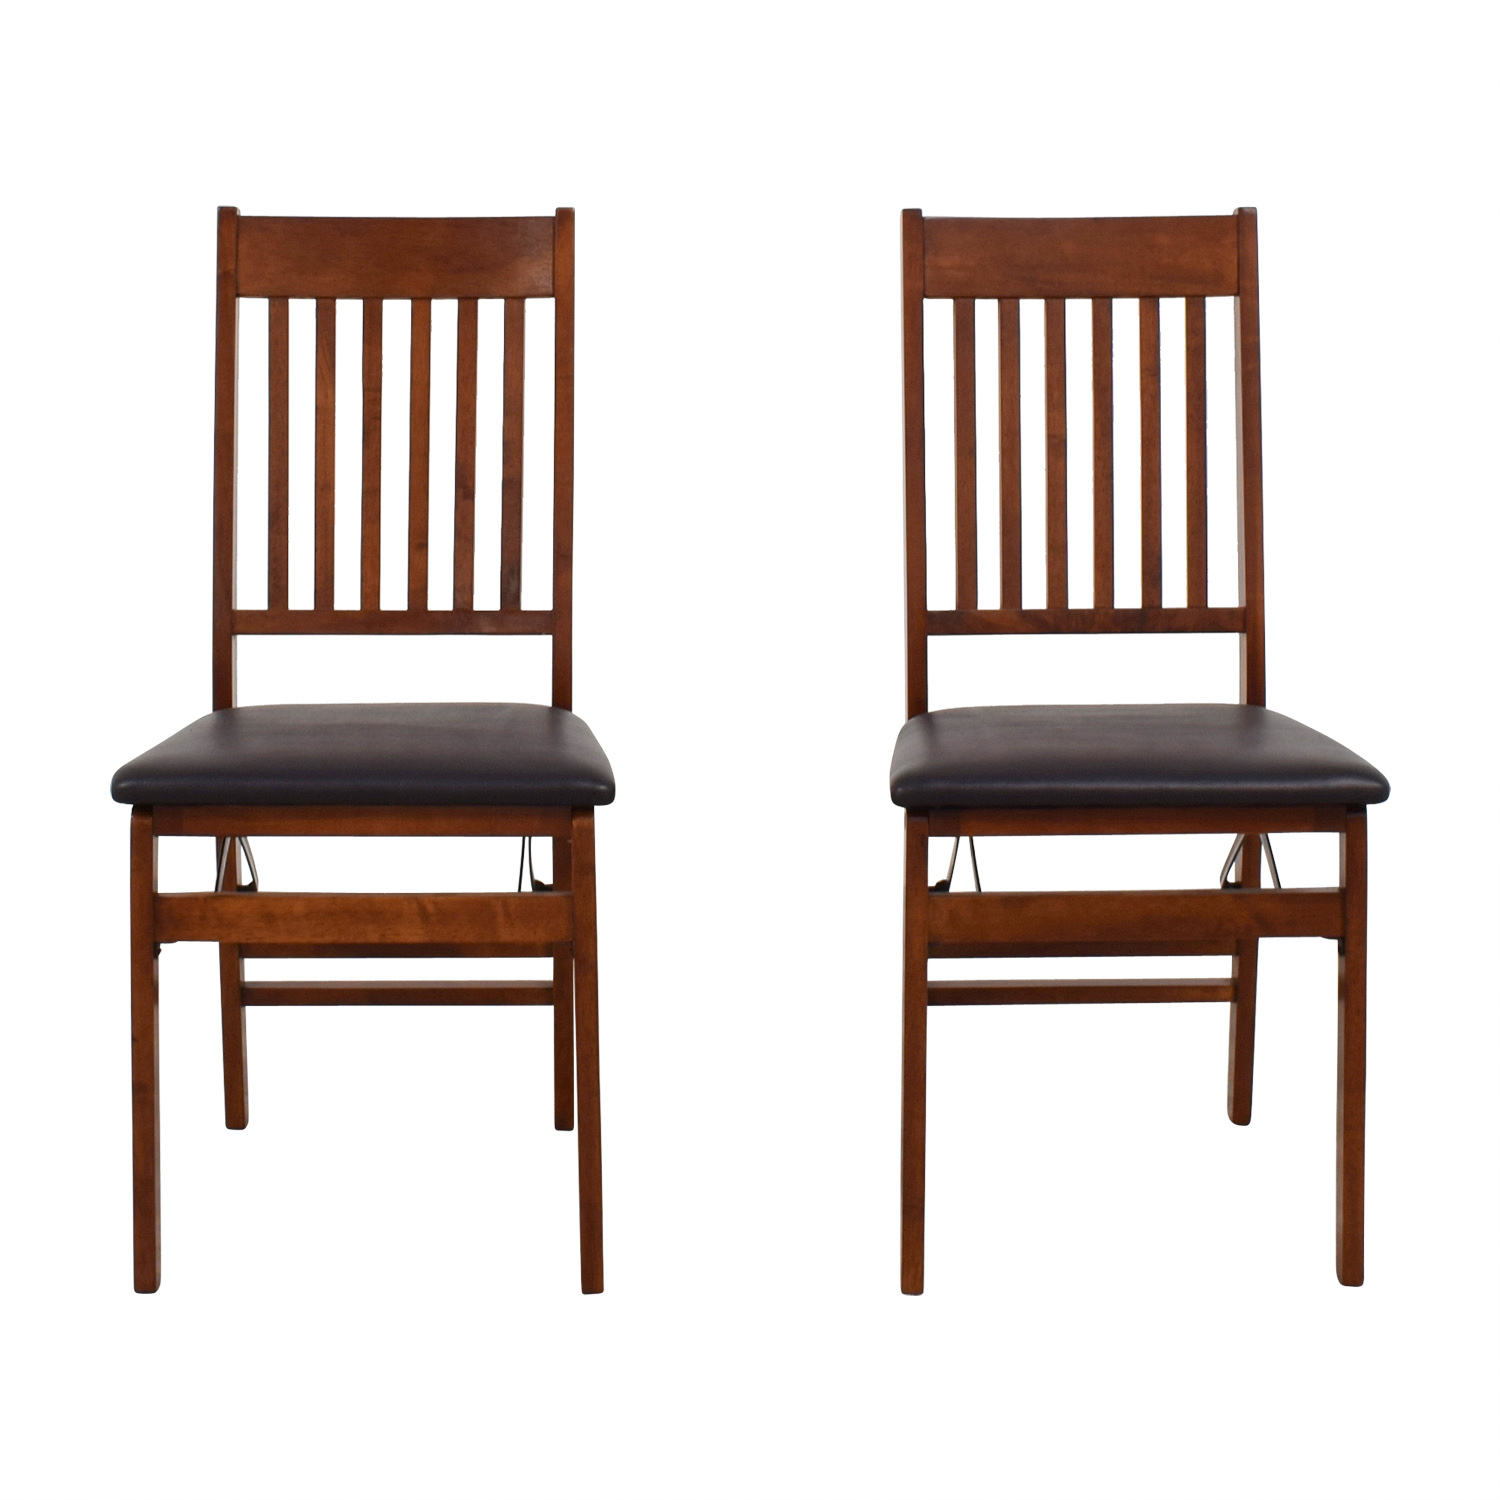 Linon Home Decor Linon Home Decor Mission Back Wood Folding Chairs used